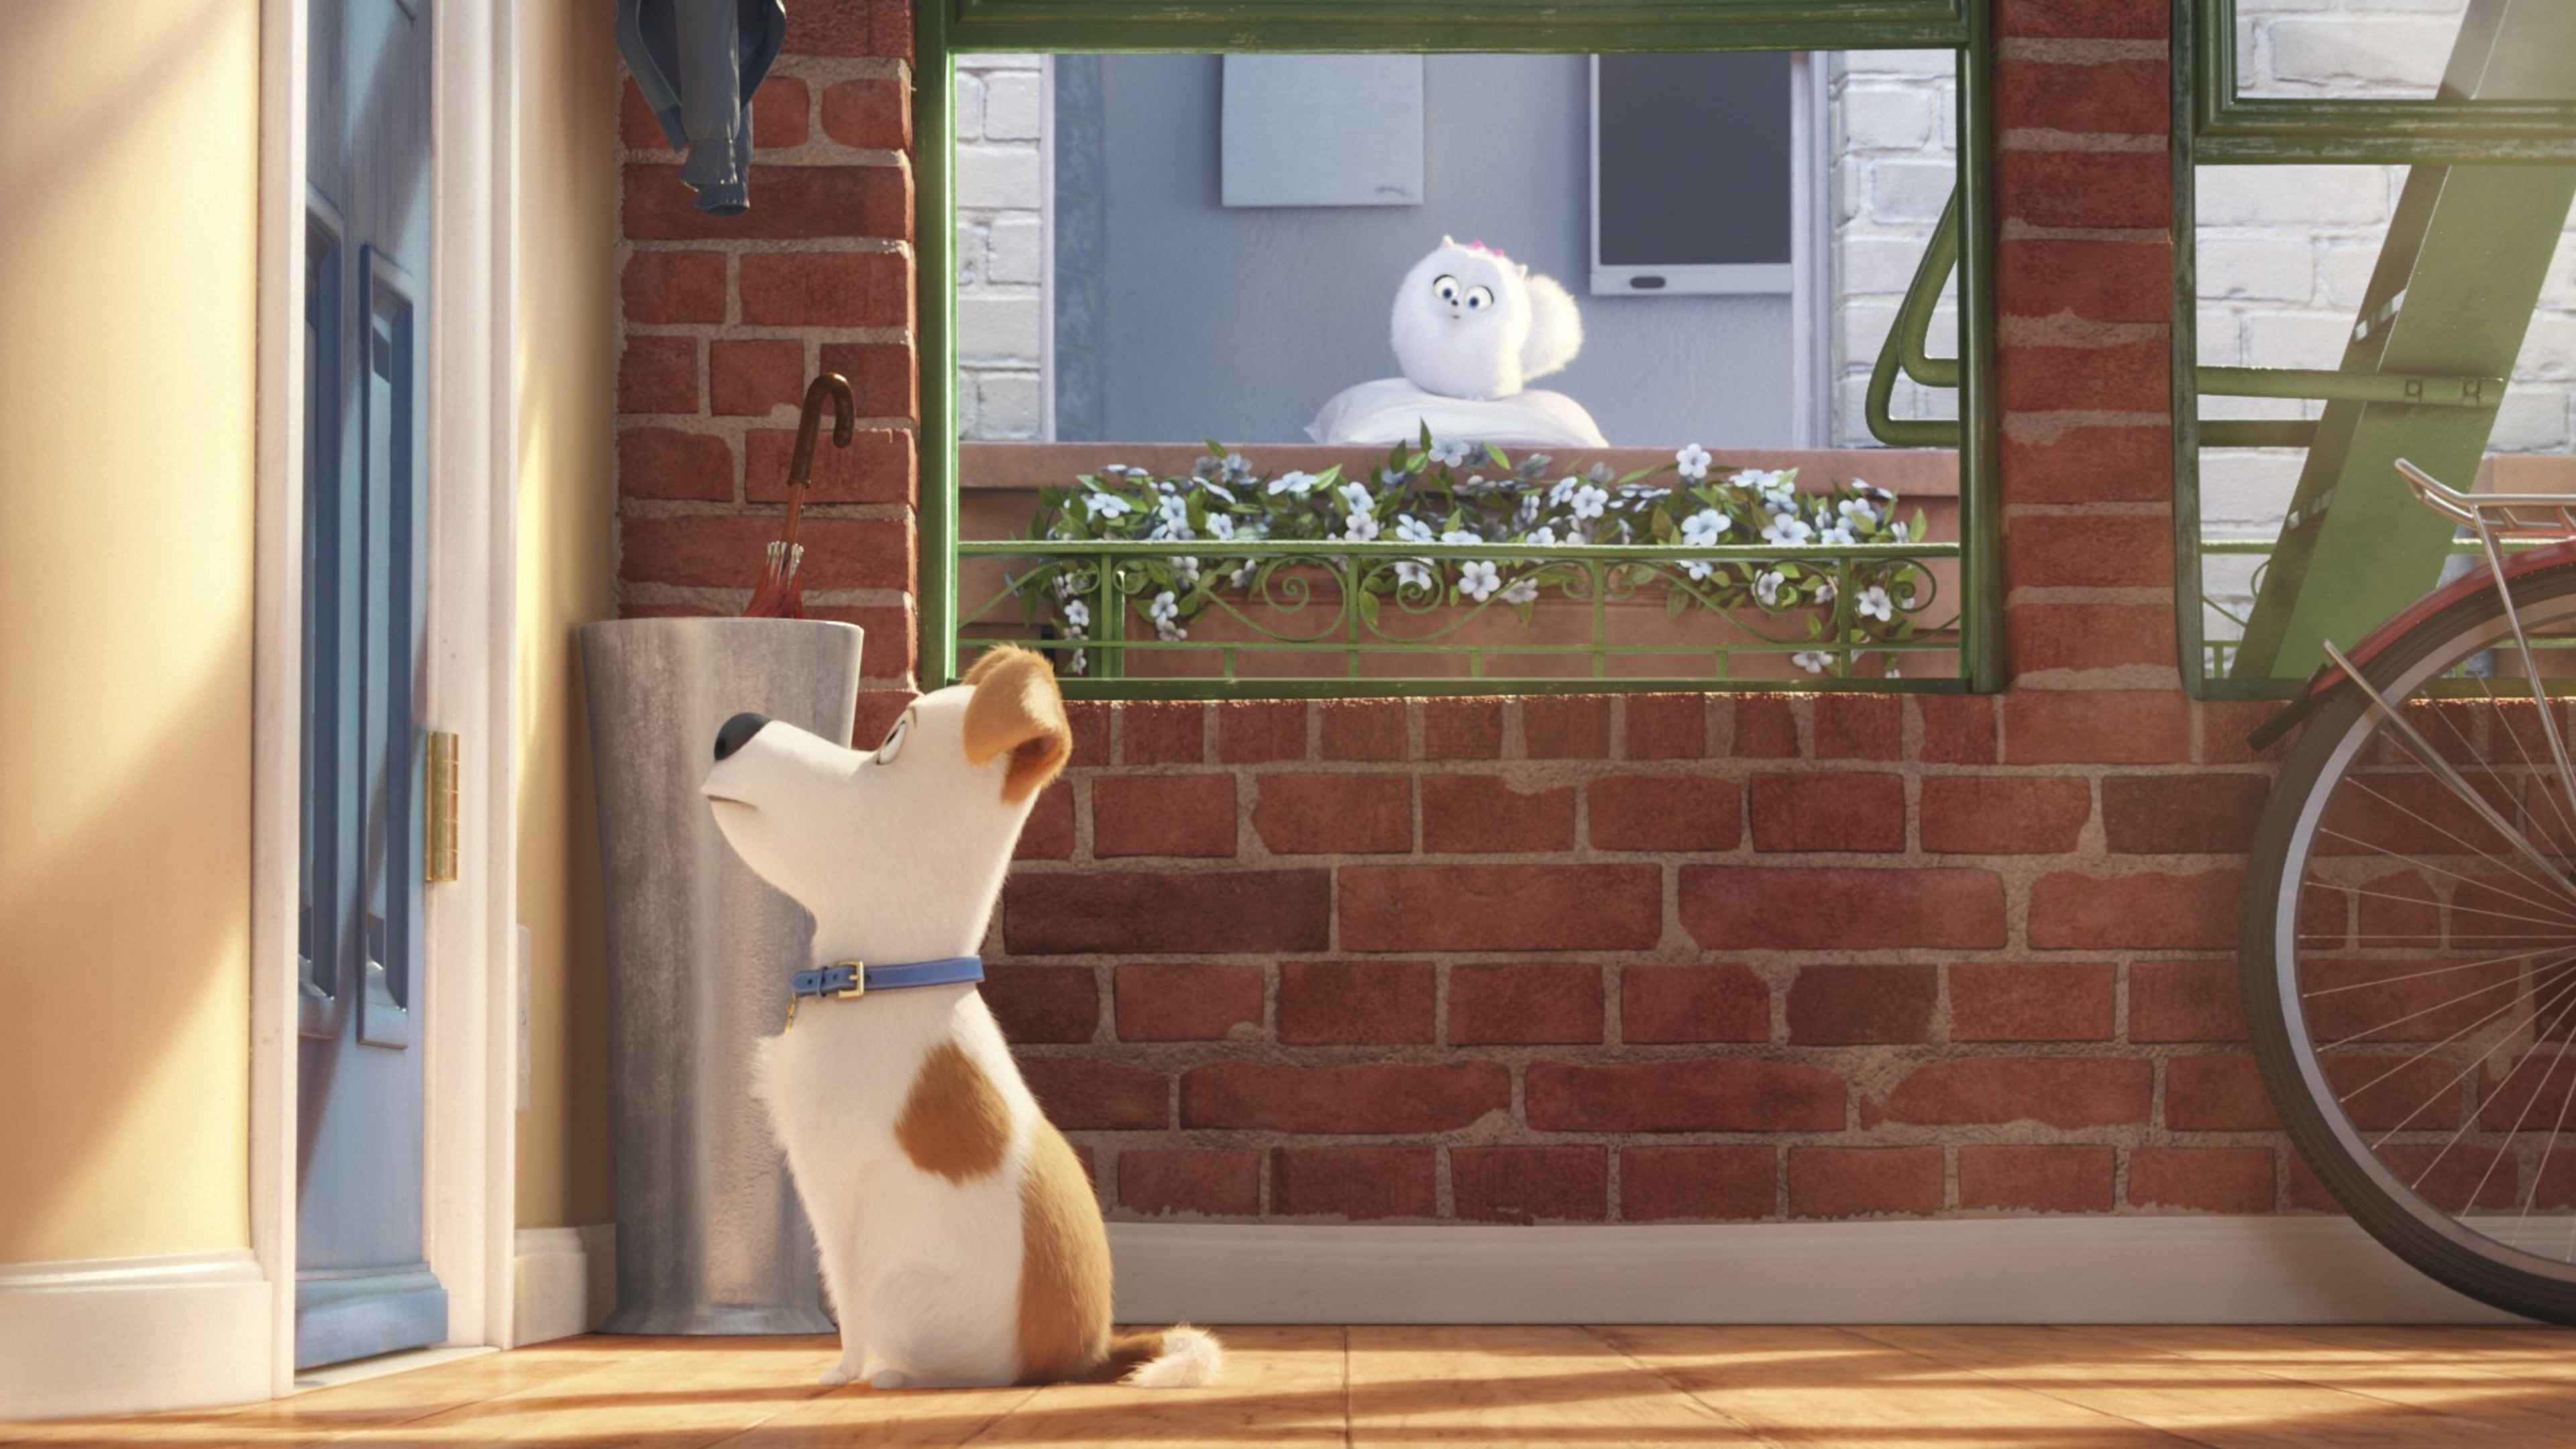 240x320 The Secrete Life Of Pets Movie Main Character